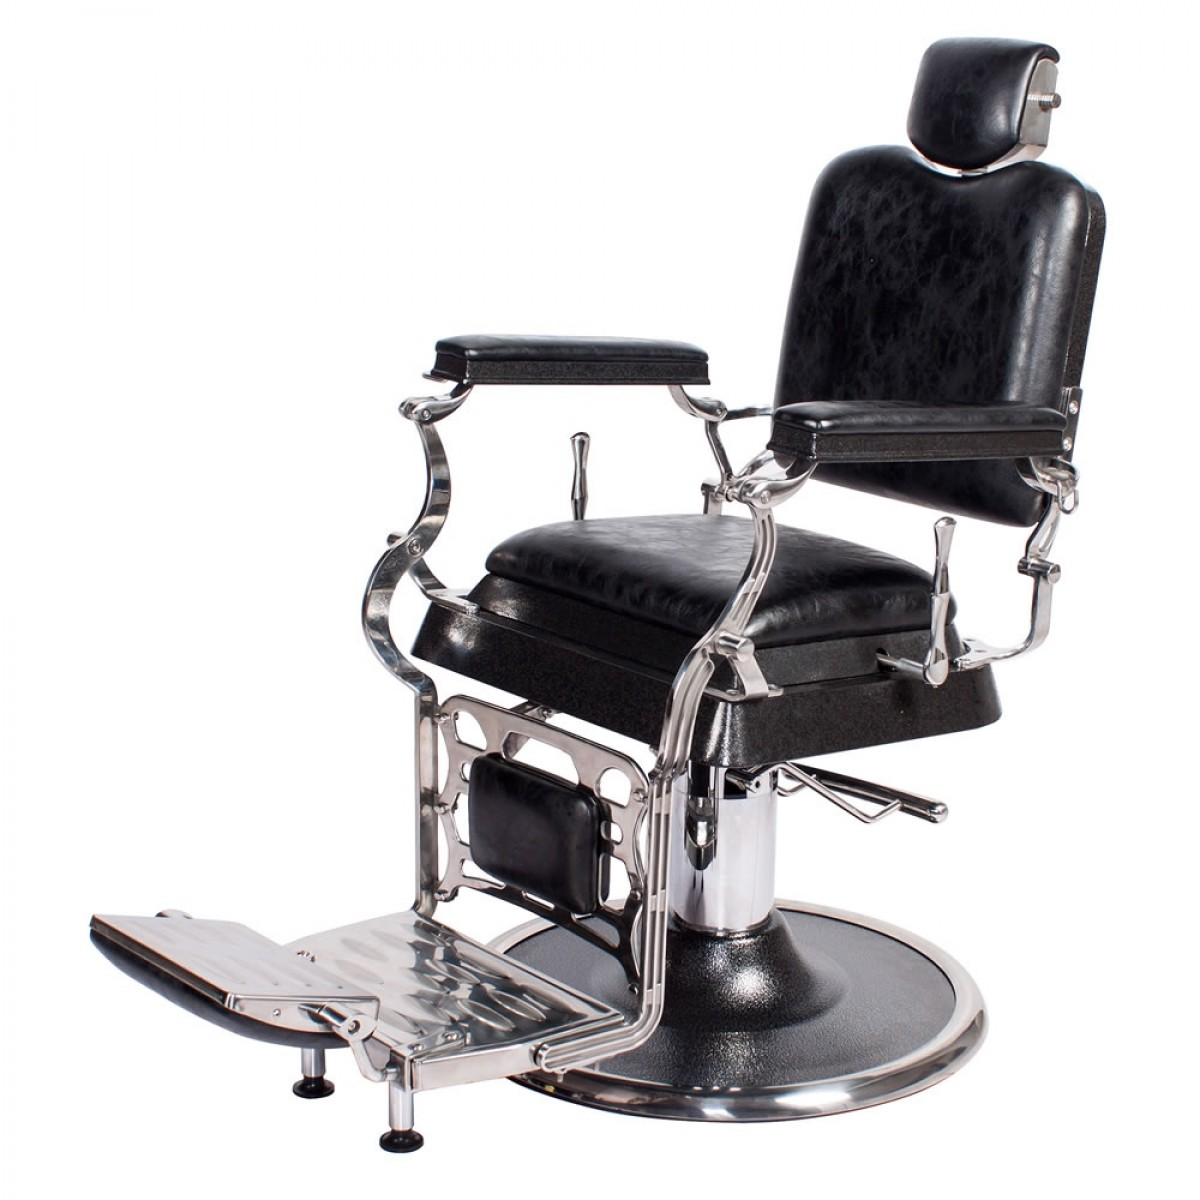 Antique Barber Chair For Sale Quotemperor Quot Barber Chair In Antique Black Barber Shop